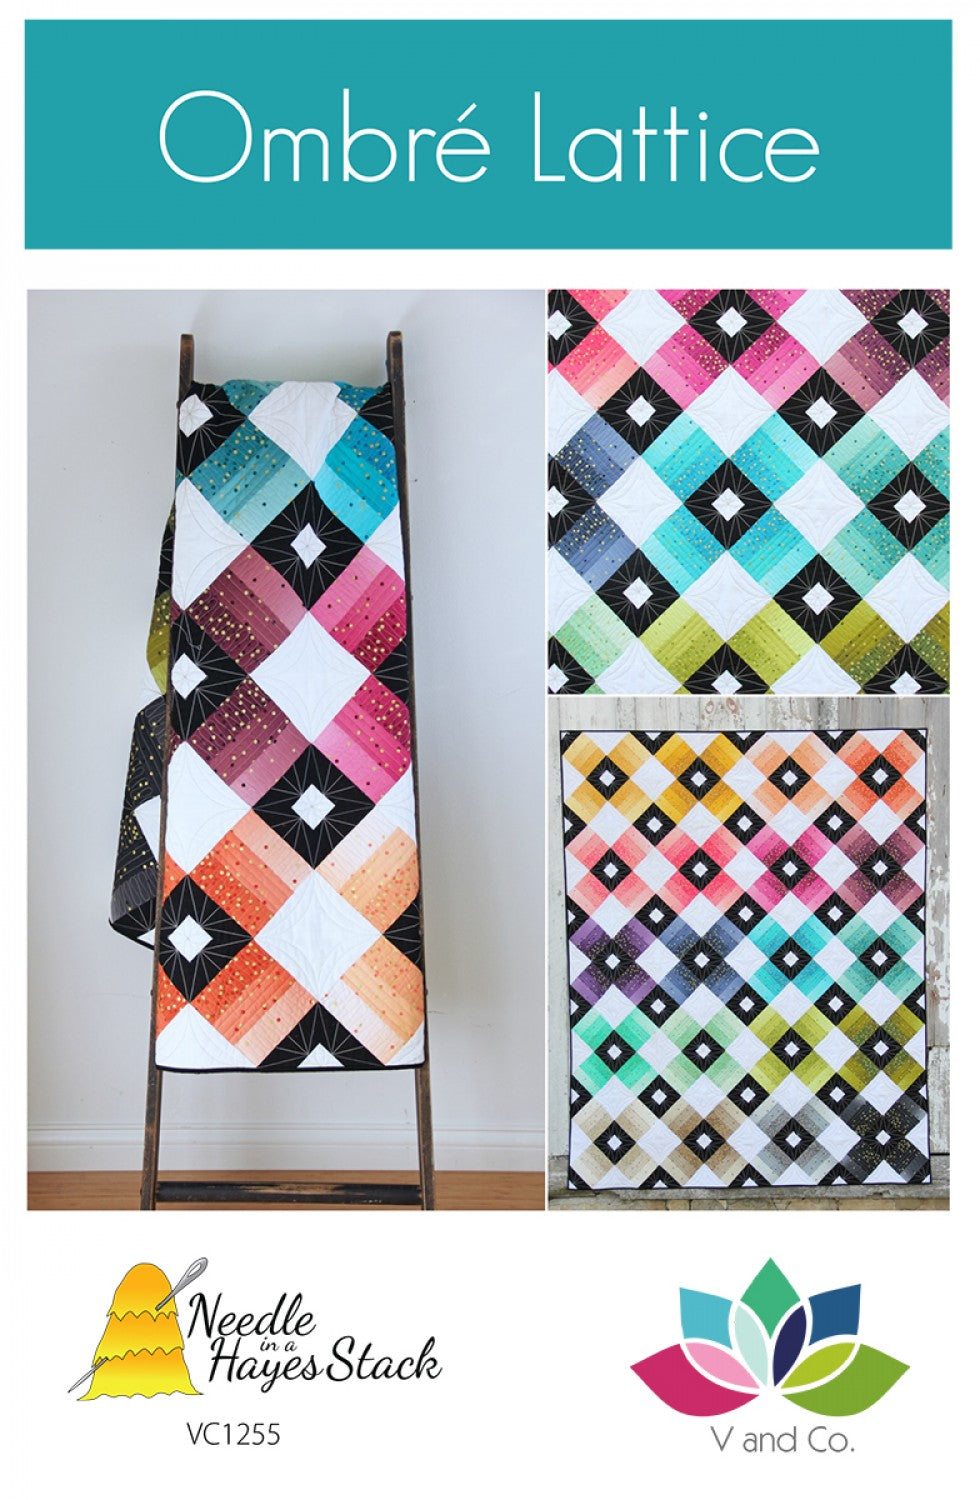 Ombre Lattice Quilt Pattern by Tiffany Hayes of Needle in a Hayes Stack